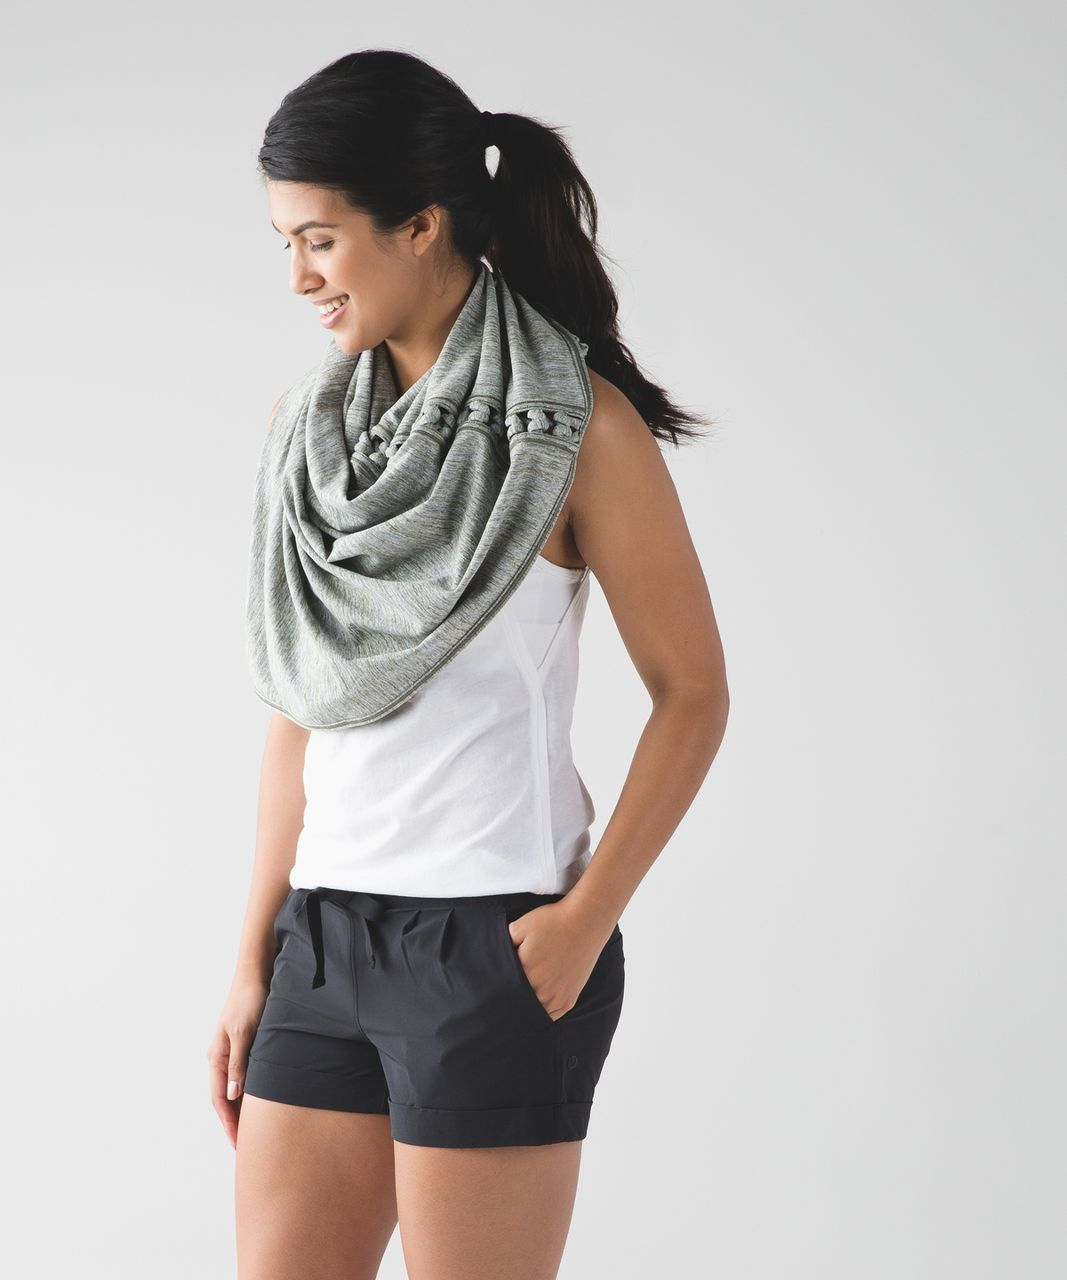 Lululemon Vinyasa Scarf (Braid) - Space Dye Camo Desert Olive Fatigue Green